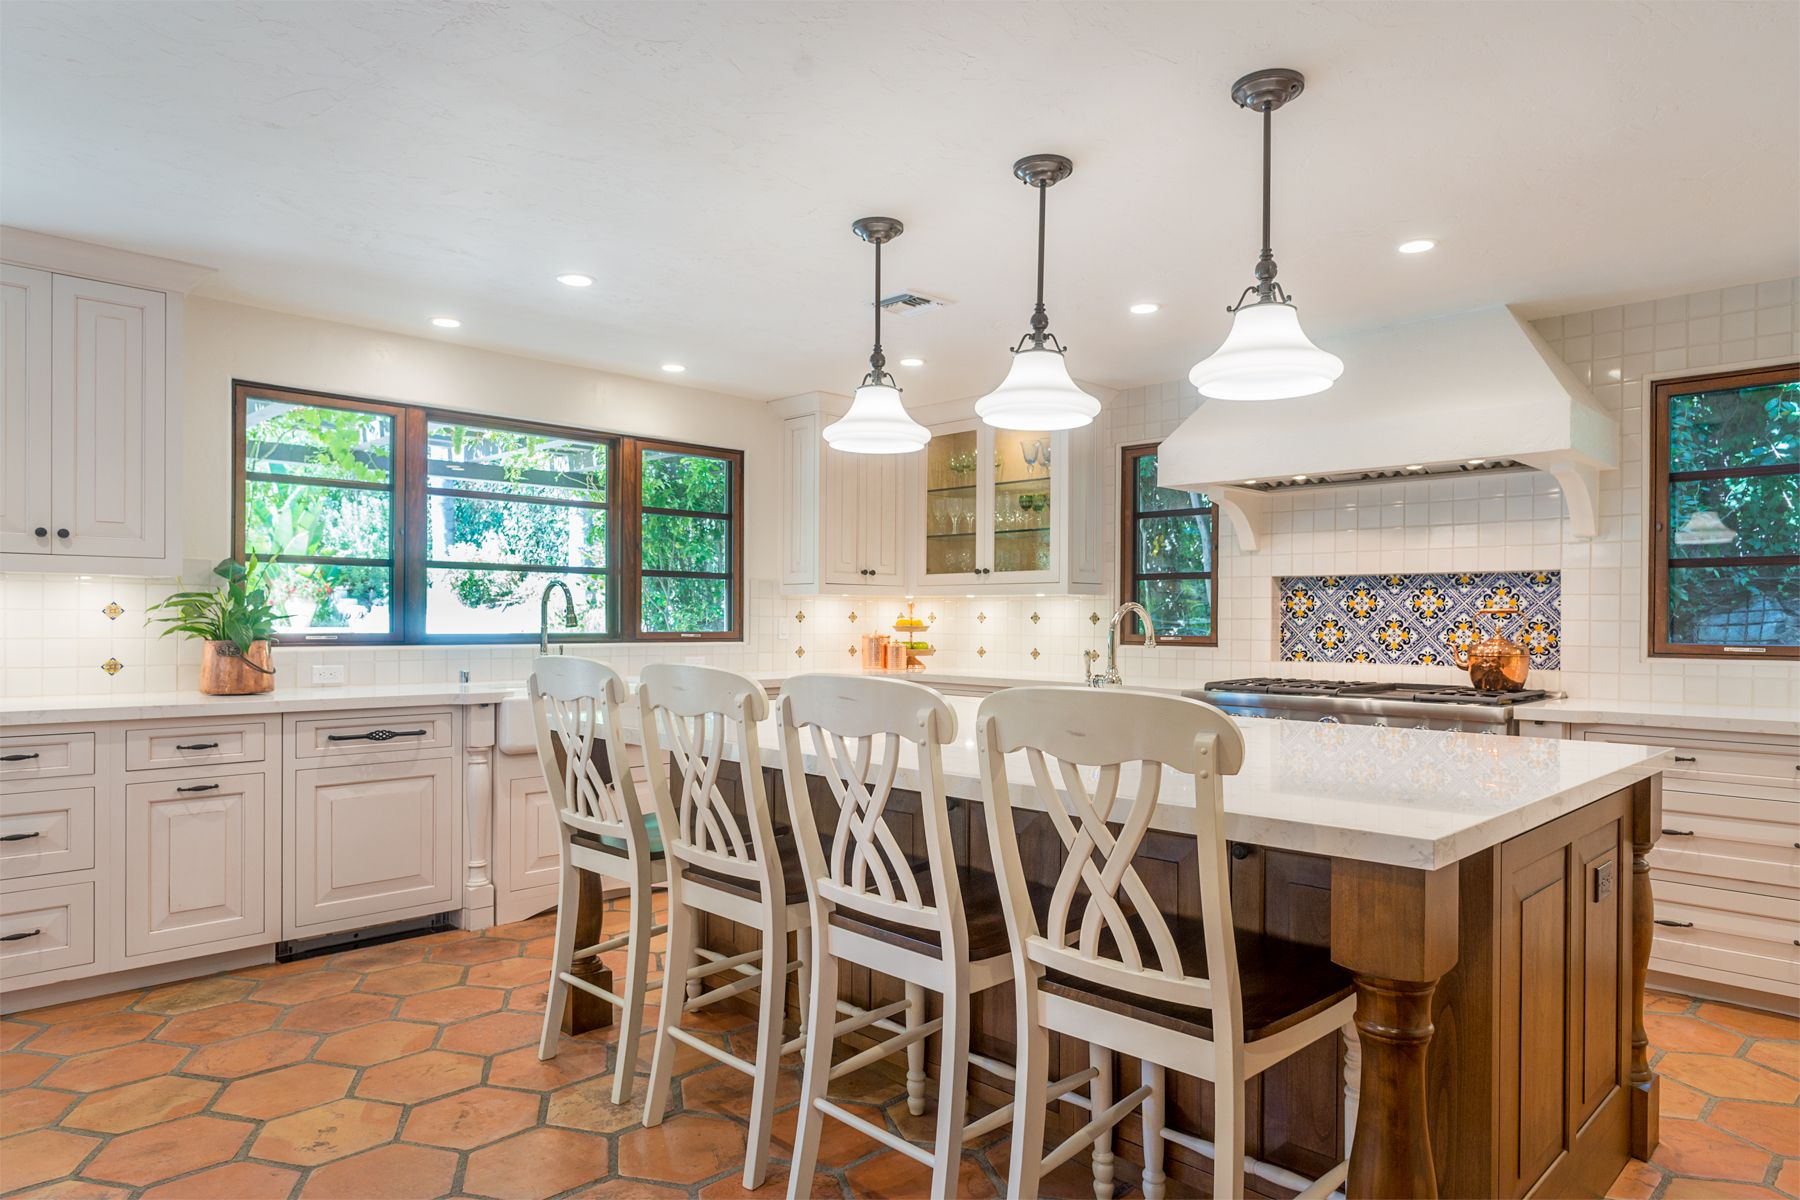 A Contemporary Spanish Style Kitchen Renovation With A U Shaped